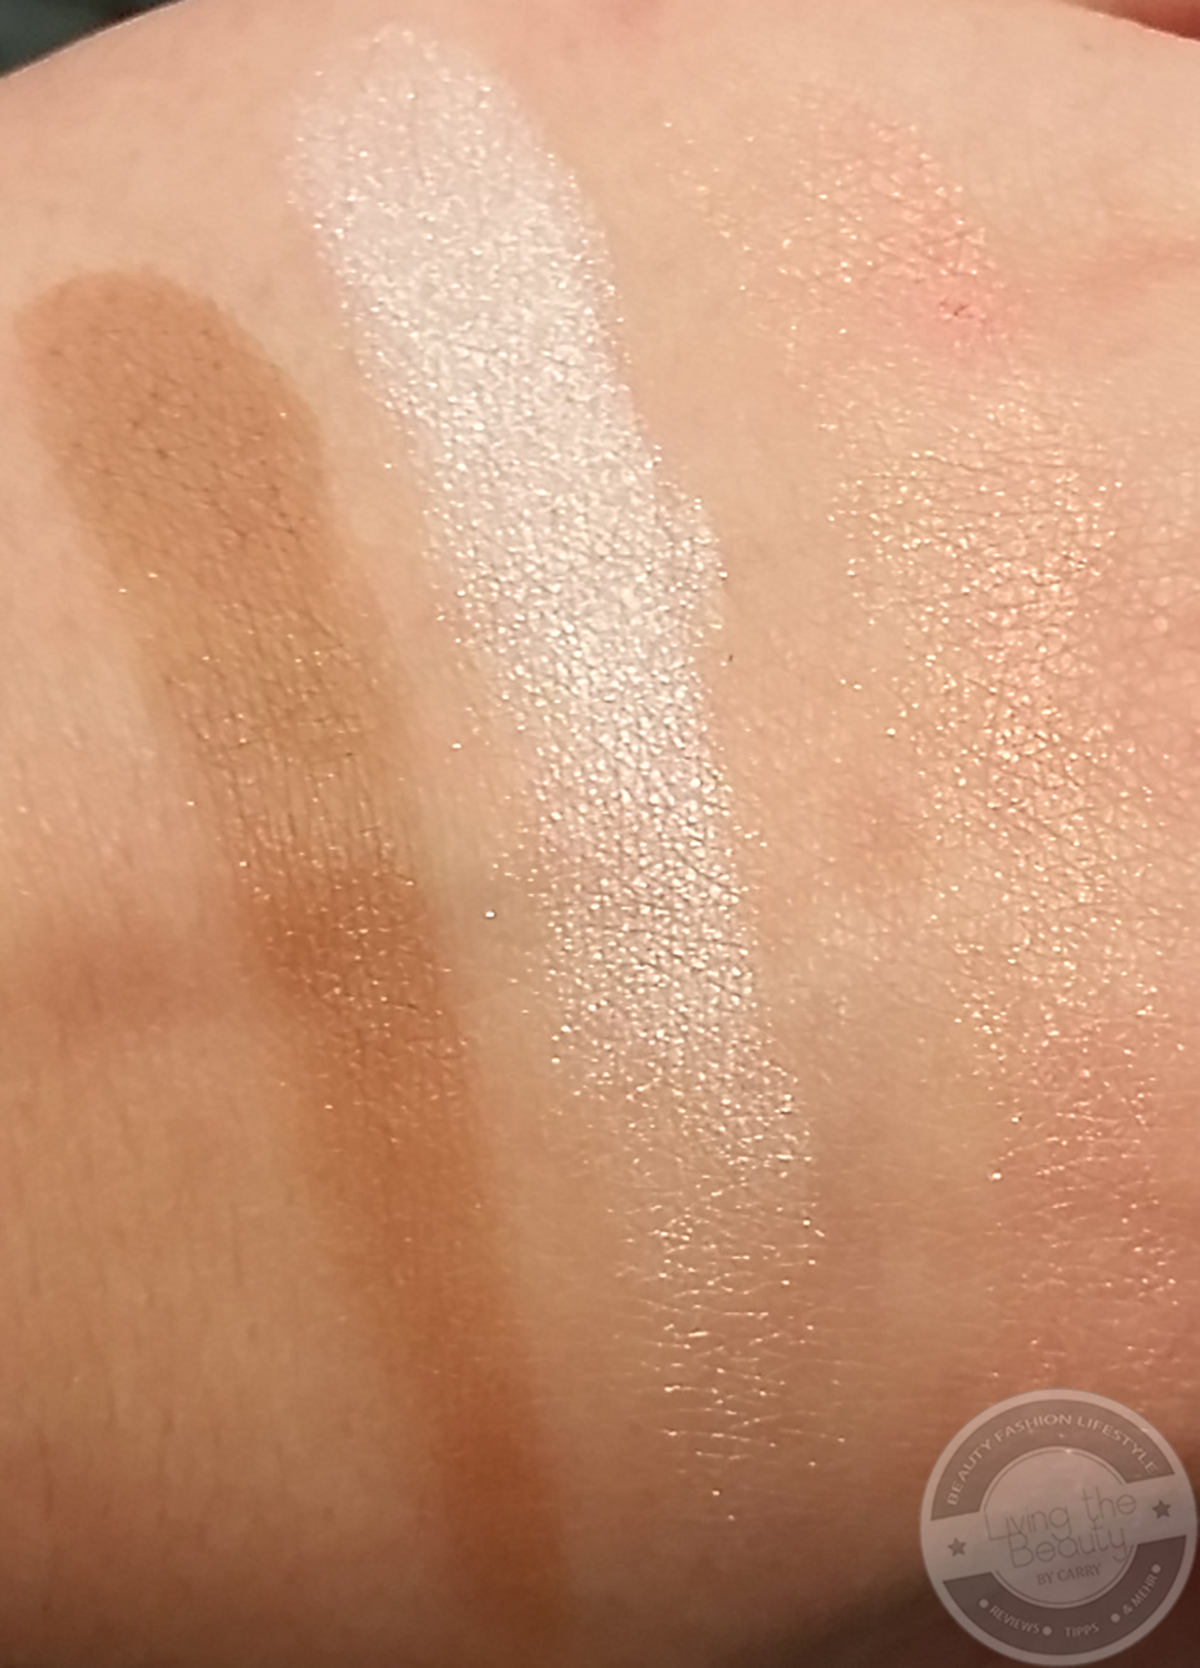 essence-masterpieces-le-limited-edition Gesichtet & Swatches - essence Masterpieces LE  essence-masterpieces-le-limited-edition-swatches-2 Gesichtet & Swatches - essence Masterpieces LE